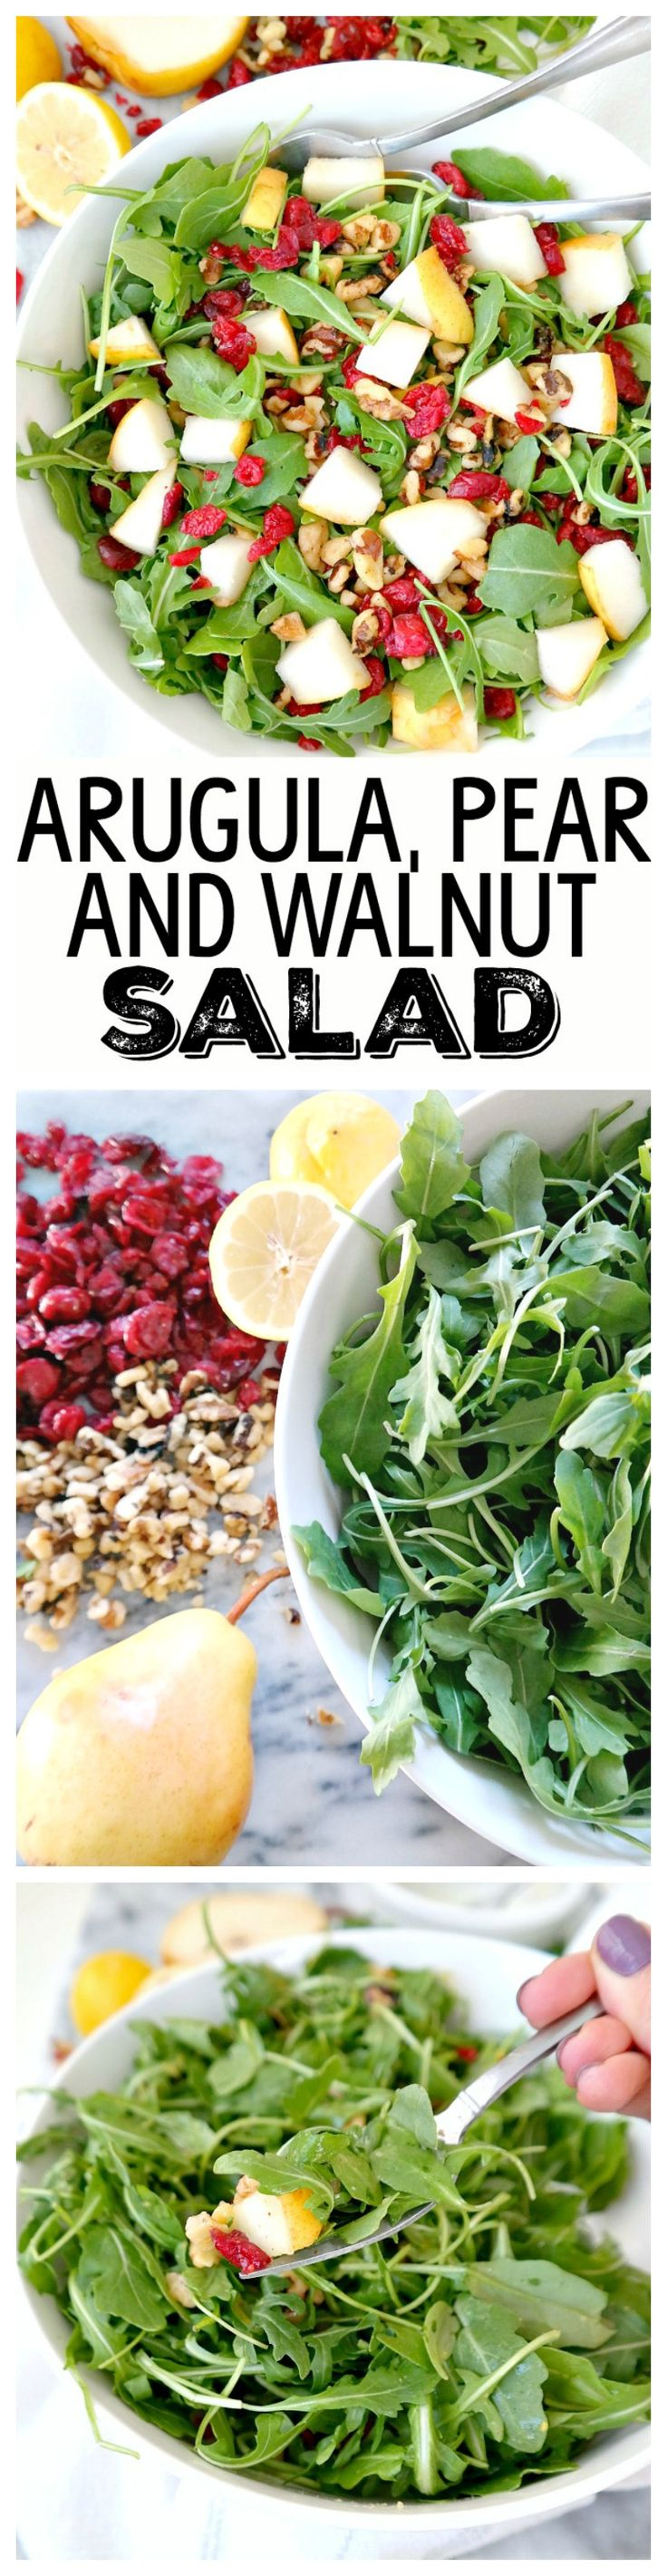 Arugula  Pear  amp  Walnut Salad with a simple lemon dressing  Vegan   Gluten Free  Quick  balanced  seasonal  easy and so delicious  My new go to everyday salad but perfect for holiday parties too  From The Glowing Fridge